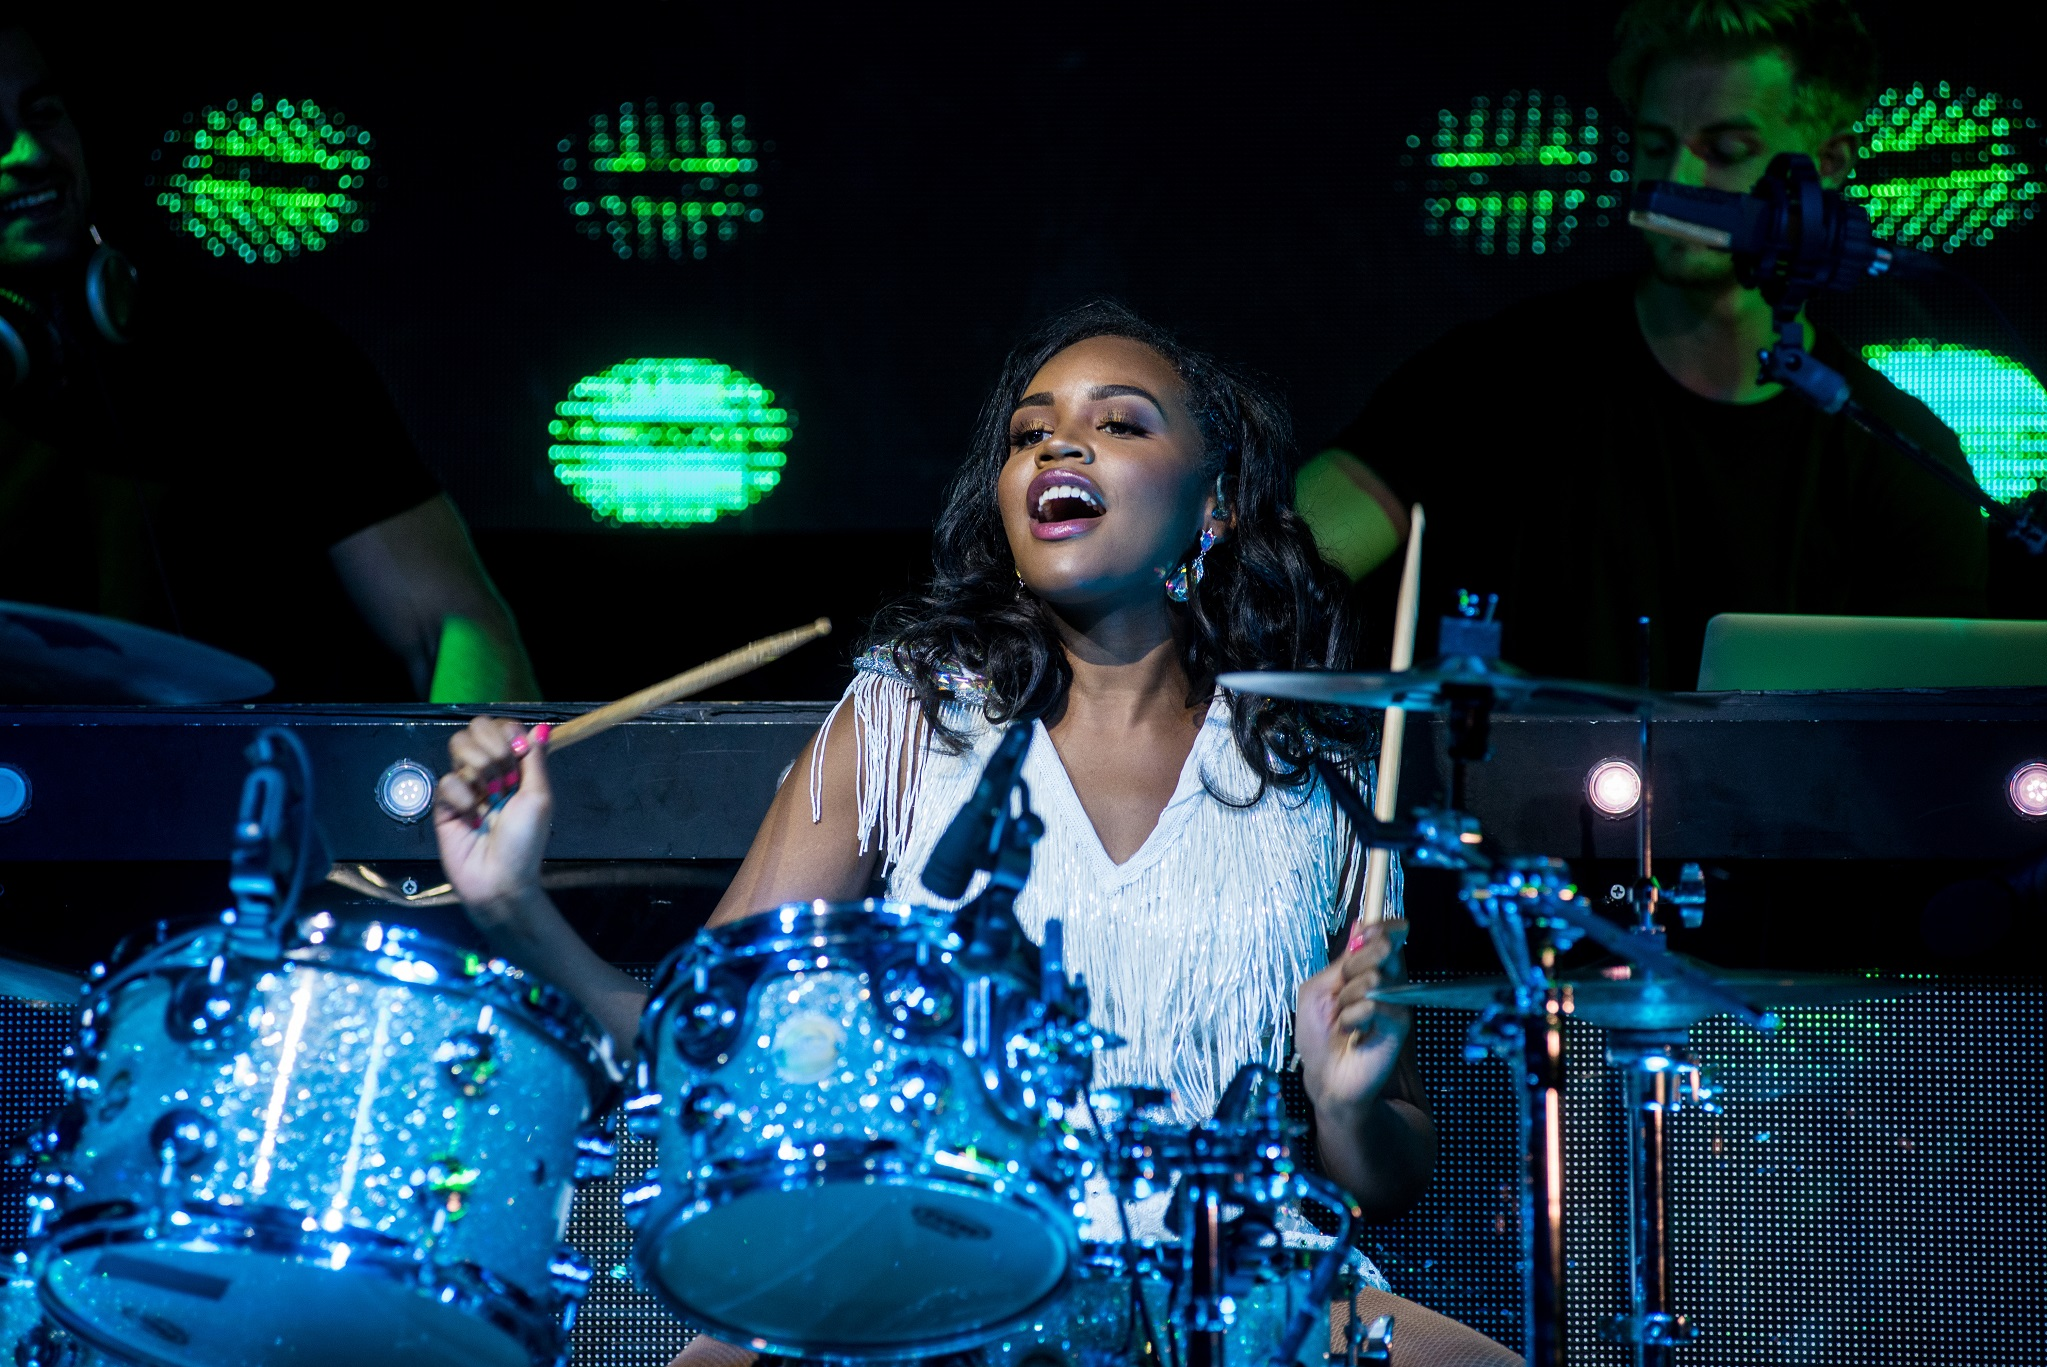 Glorious-Singer-Livetronica Drummer-Producer-Songwriter-Marquee-Nightclub-Video-New York-NY-36lr.jpg